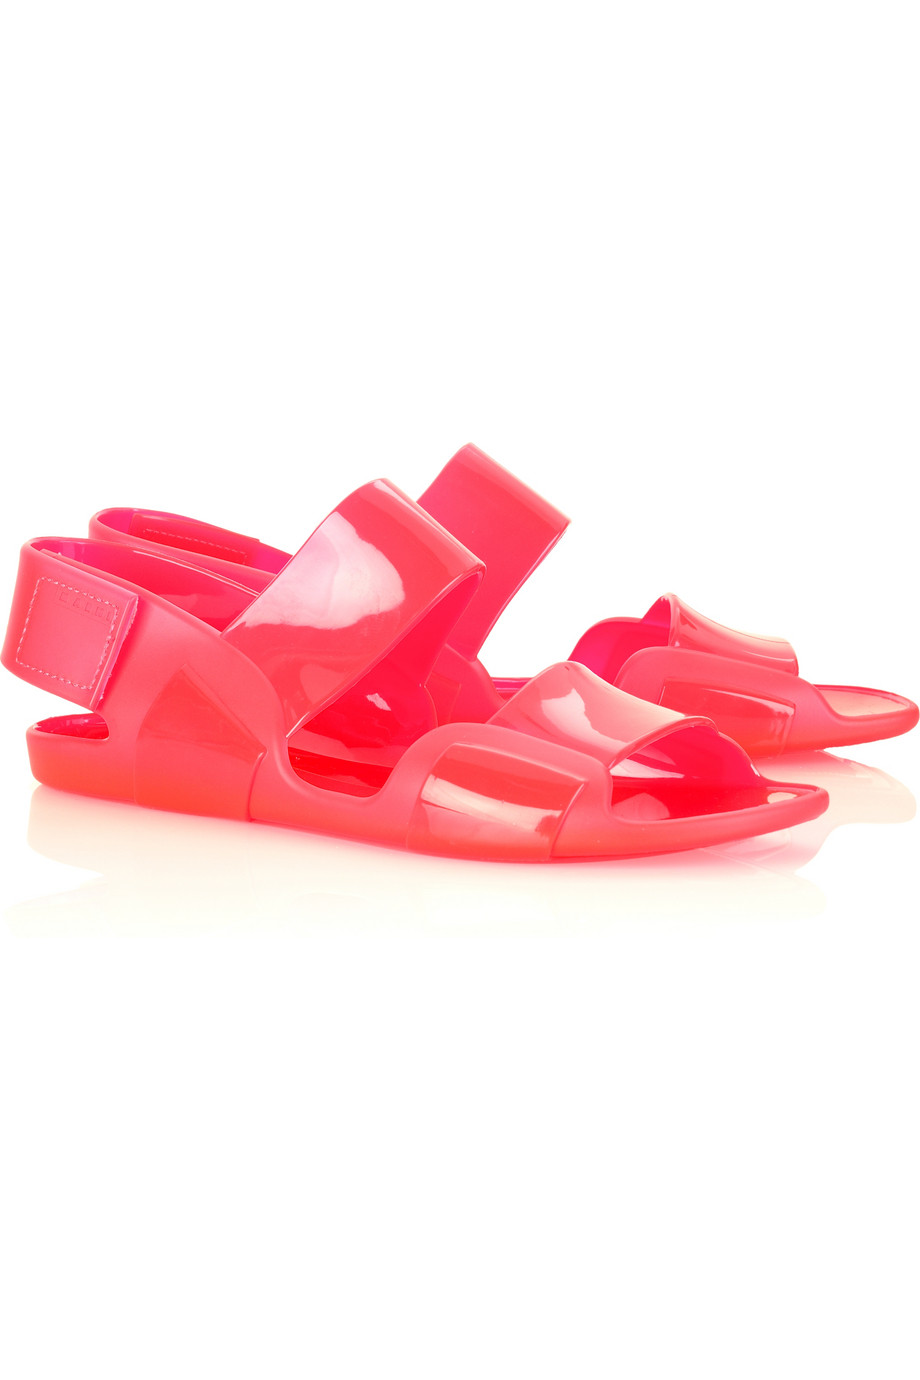 Marni Flat Jelly Sandals In Pink Lyst